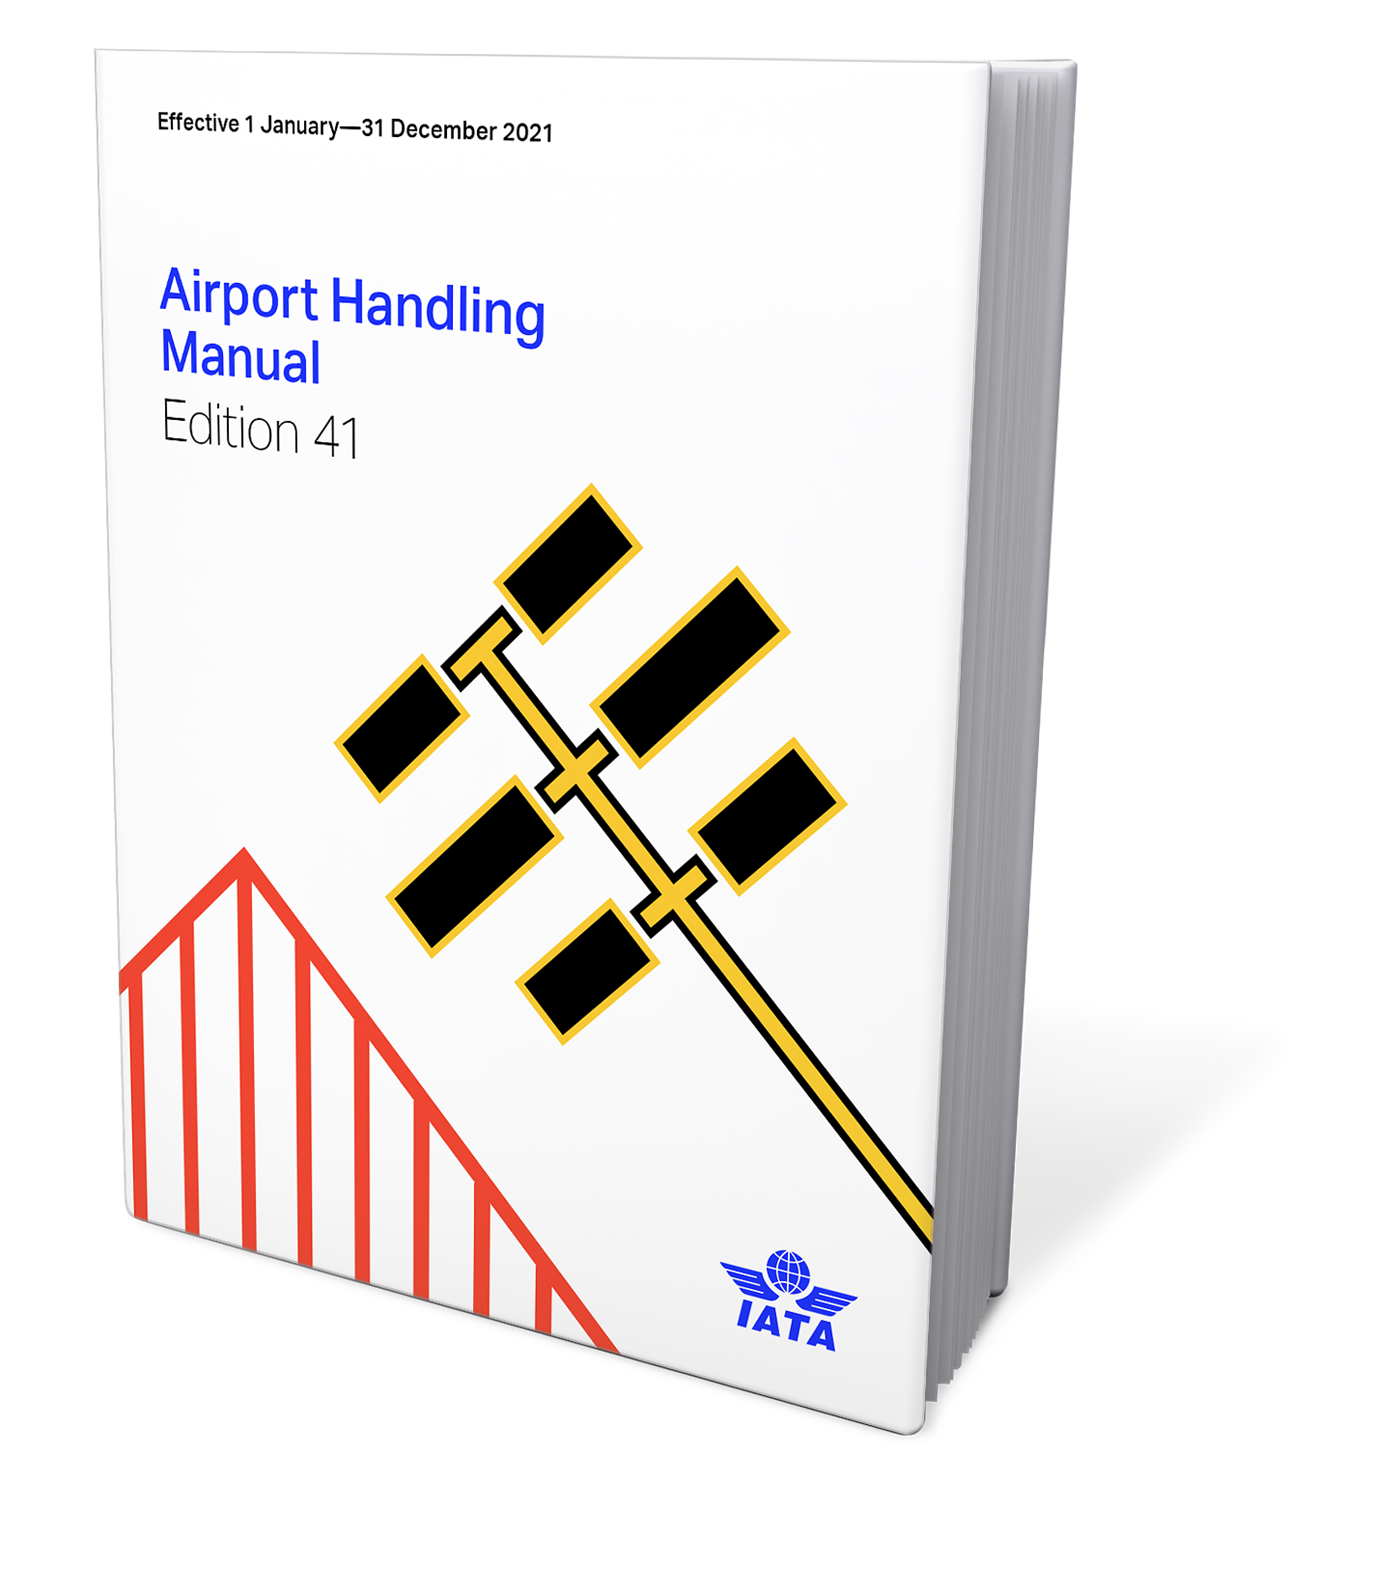 Airport Handling Manual 41st Edition